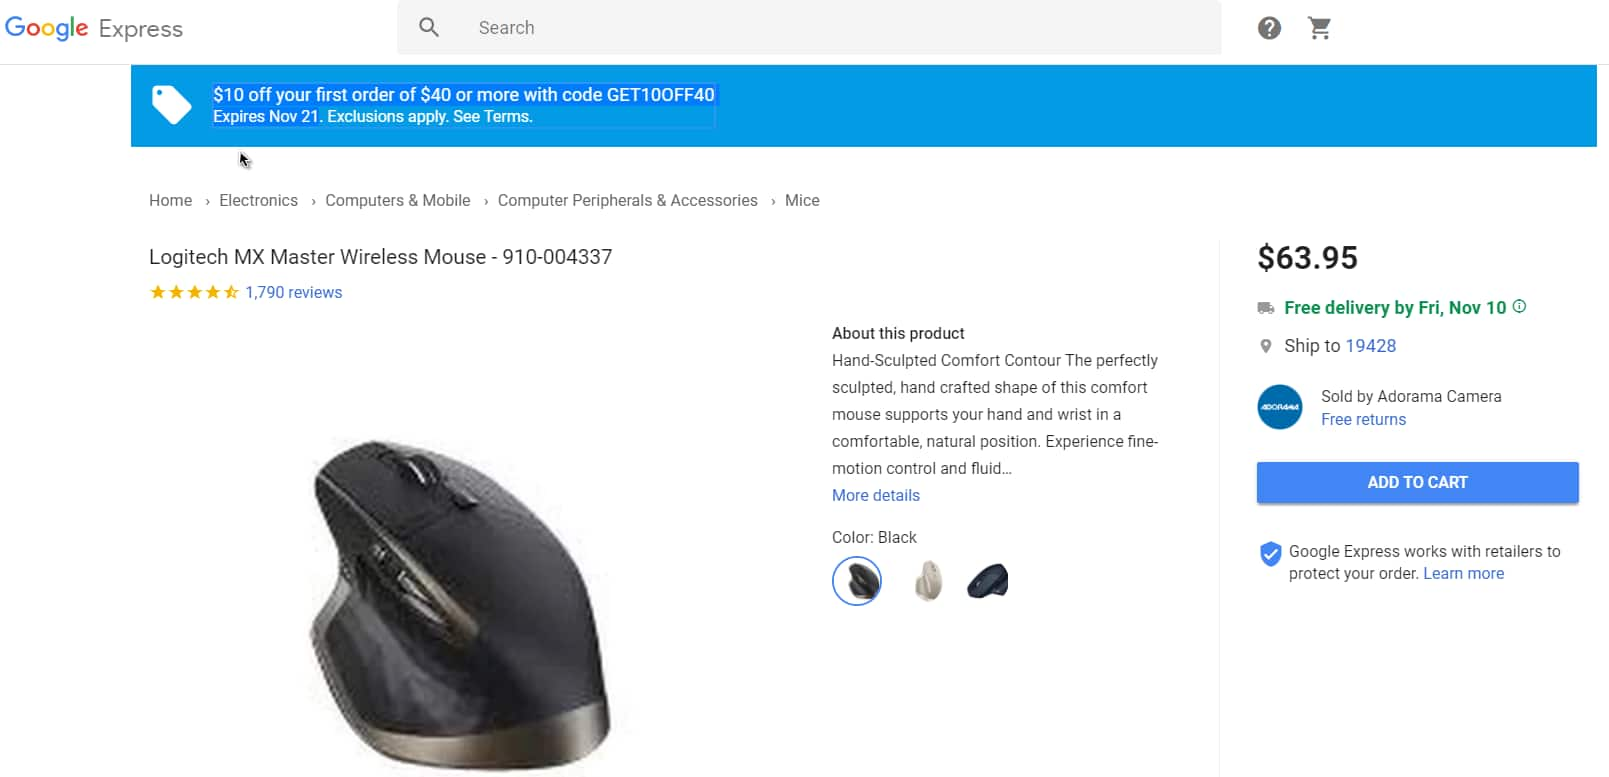 Logitech MX Master Mouse - New Black color FS  $53.95 + tax for New customers -- Possibly $20 more off with Amex offer